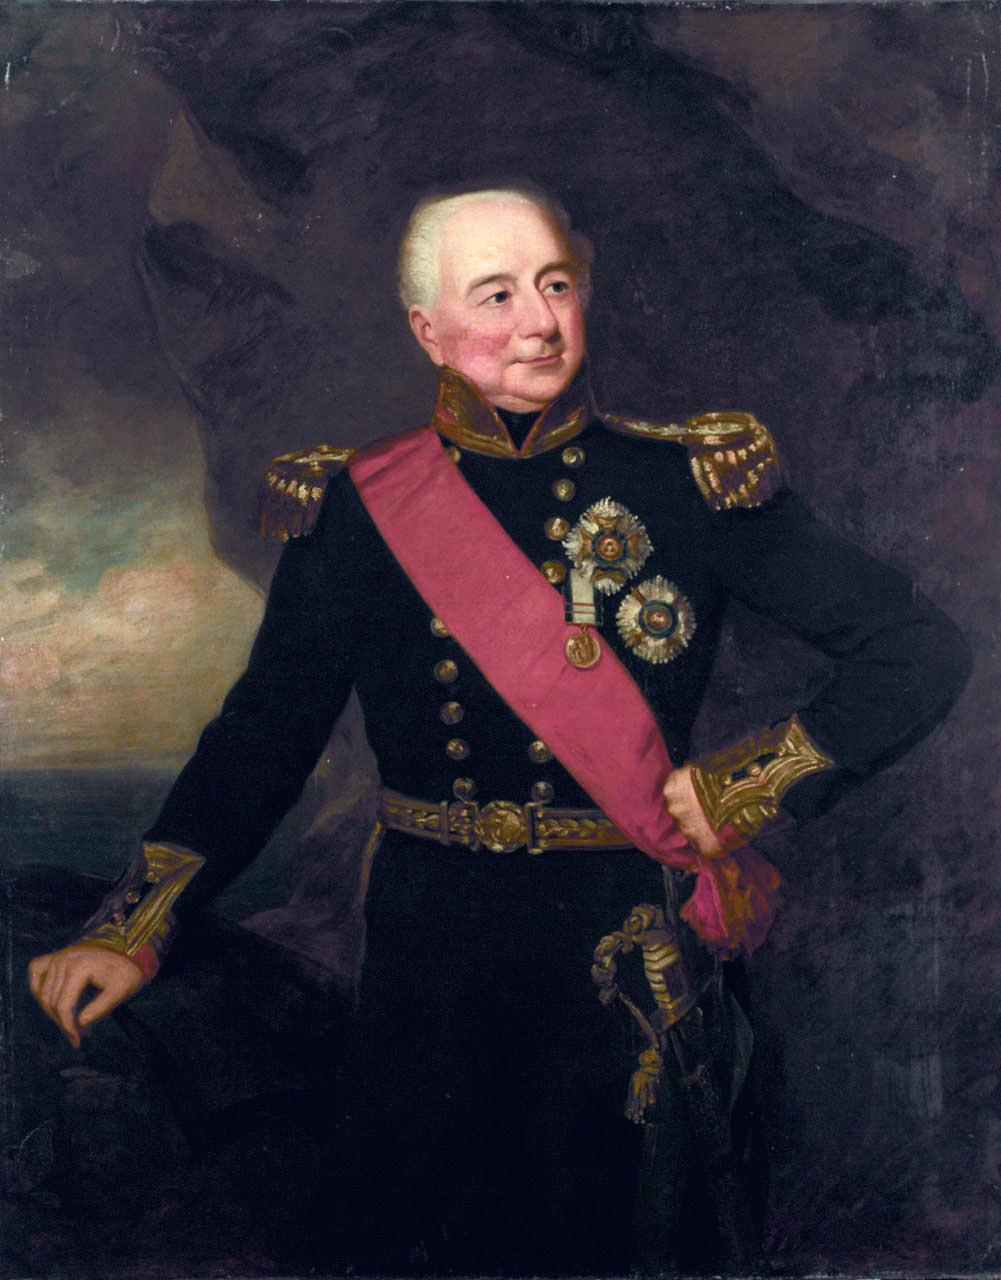 File:Admiral William Hargood (1726-1839), by Frederick Richard Say.